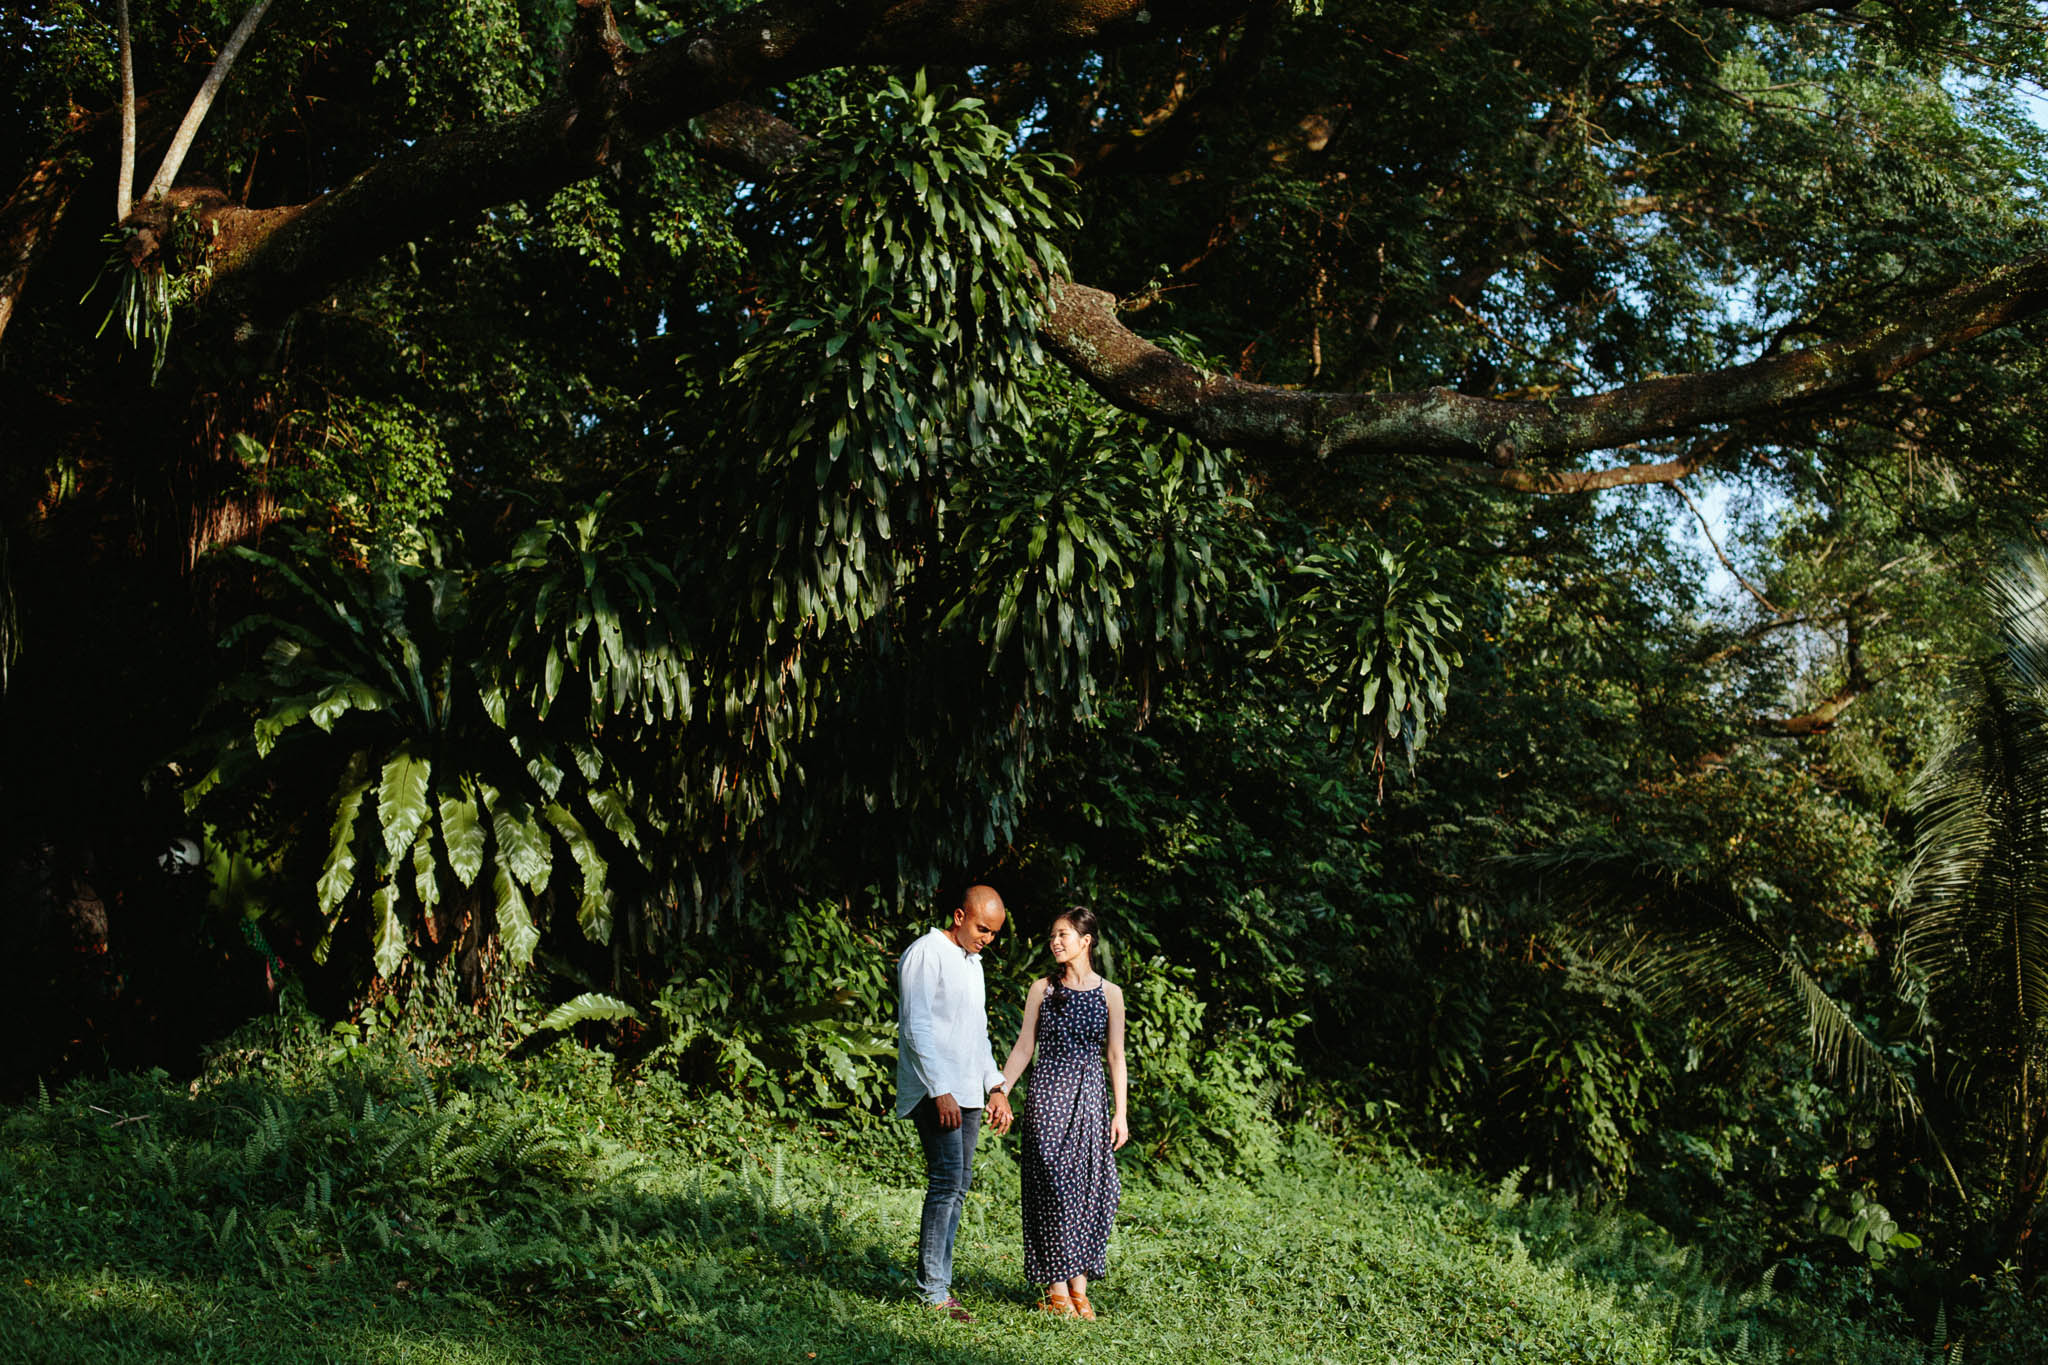 singapore-wedding-photographer-pre-wedding-jonathan-alicia-023.jpg